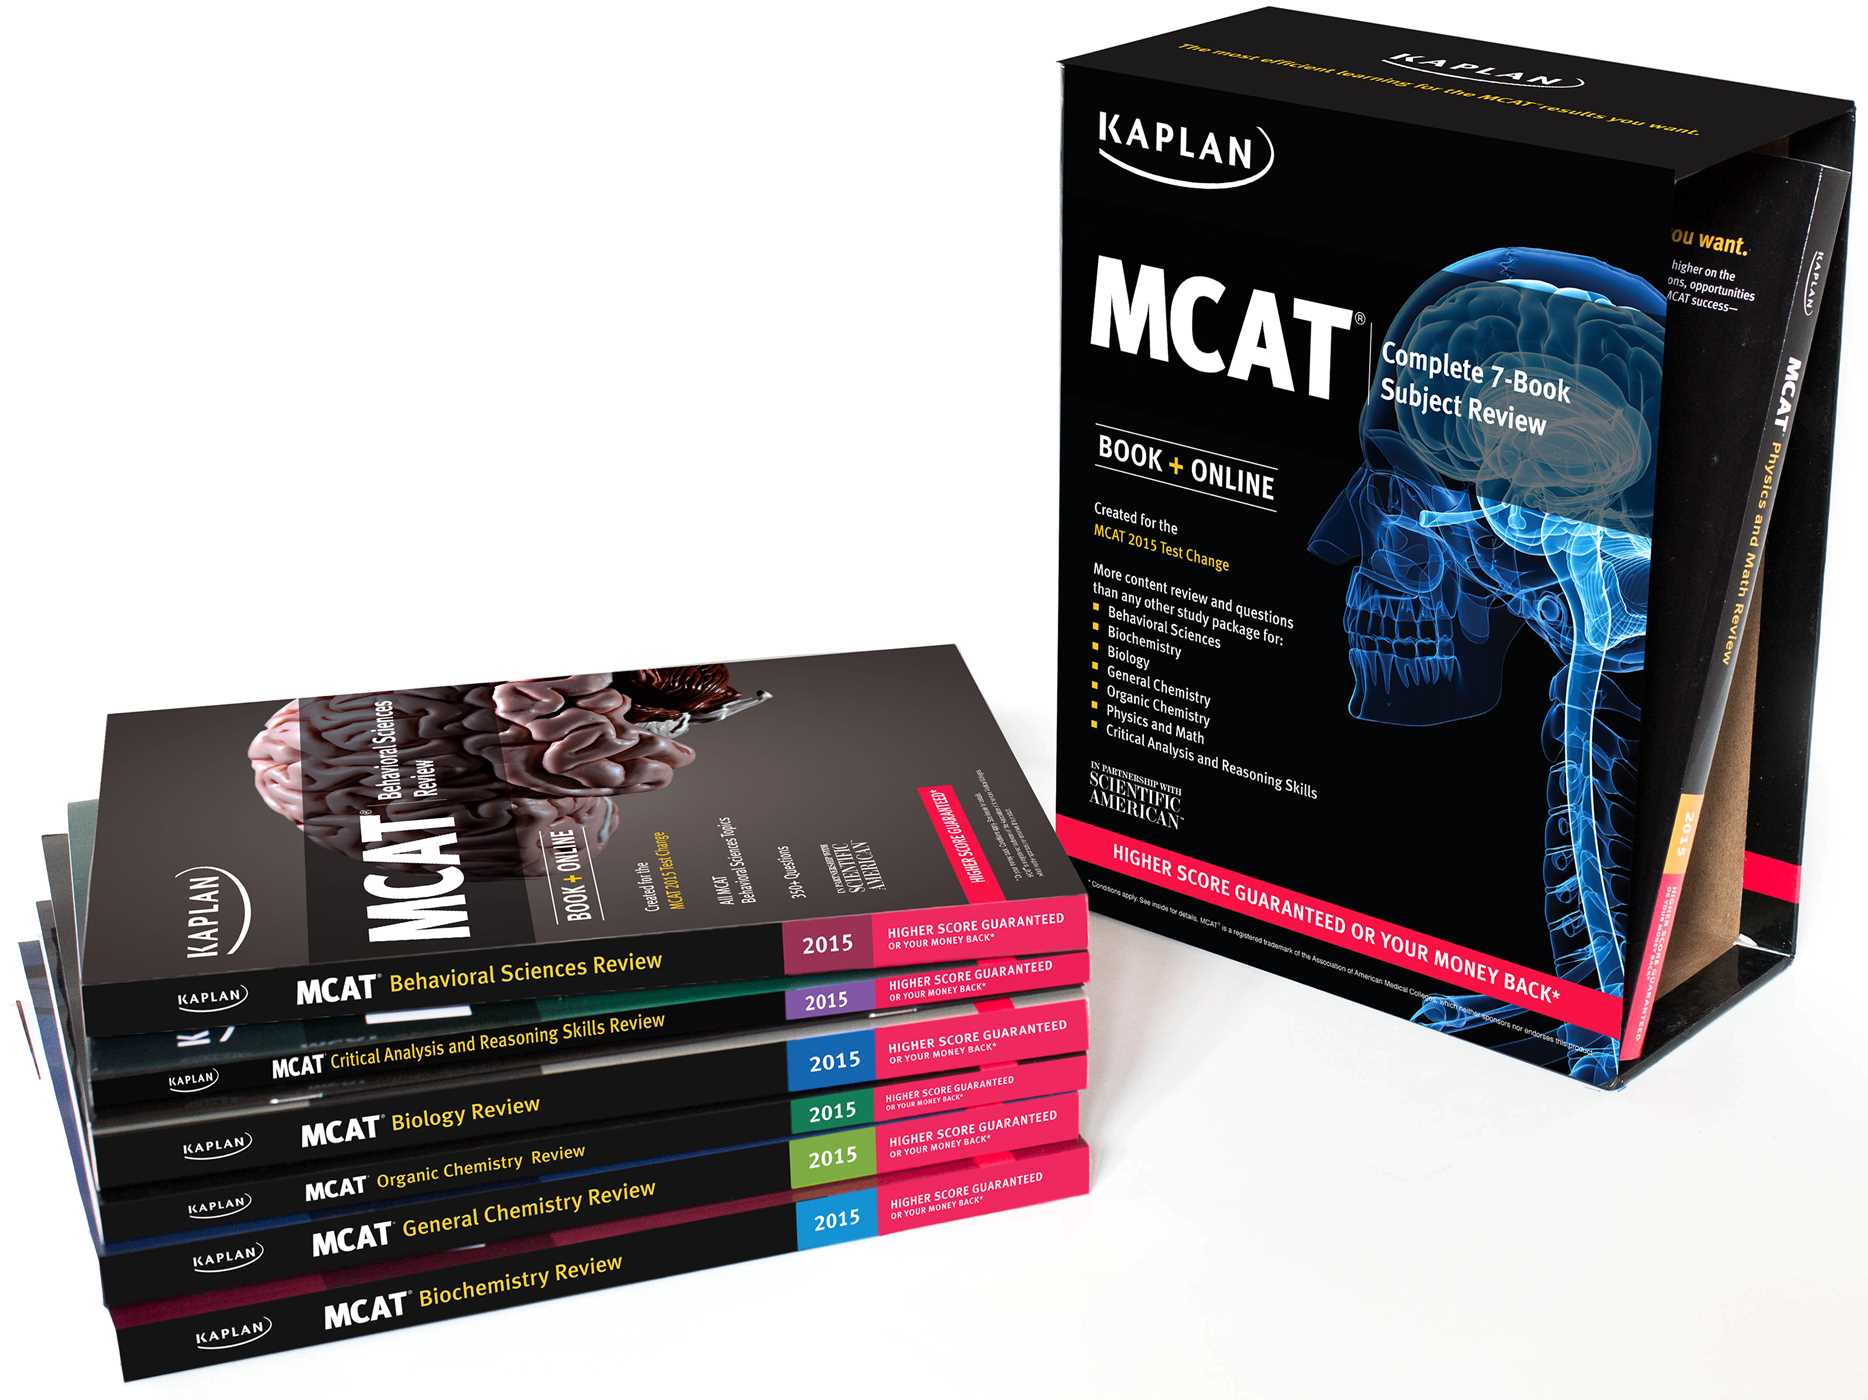 Kaplan-mcat-complete-7-book-subject-review-9781618656445_hr